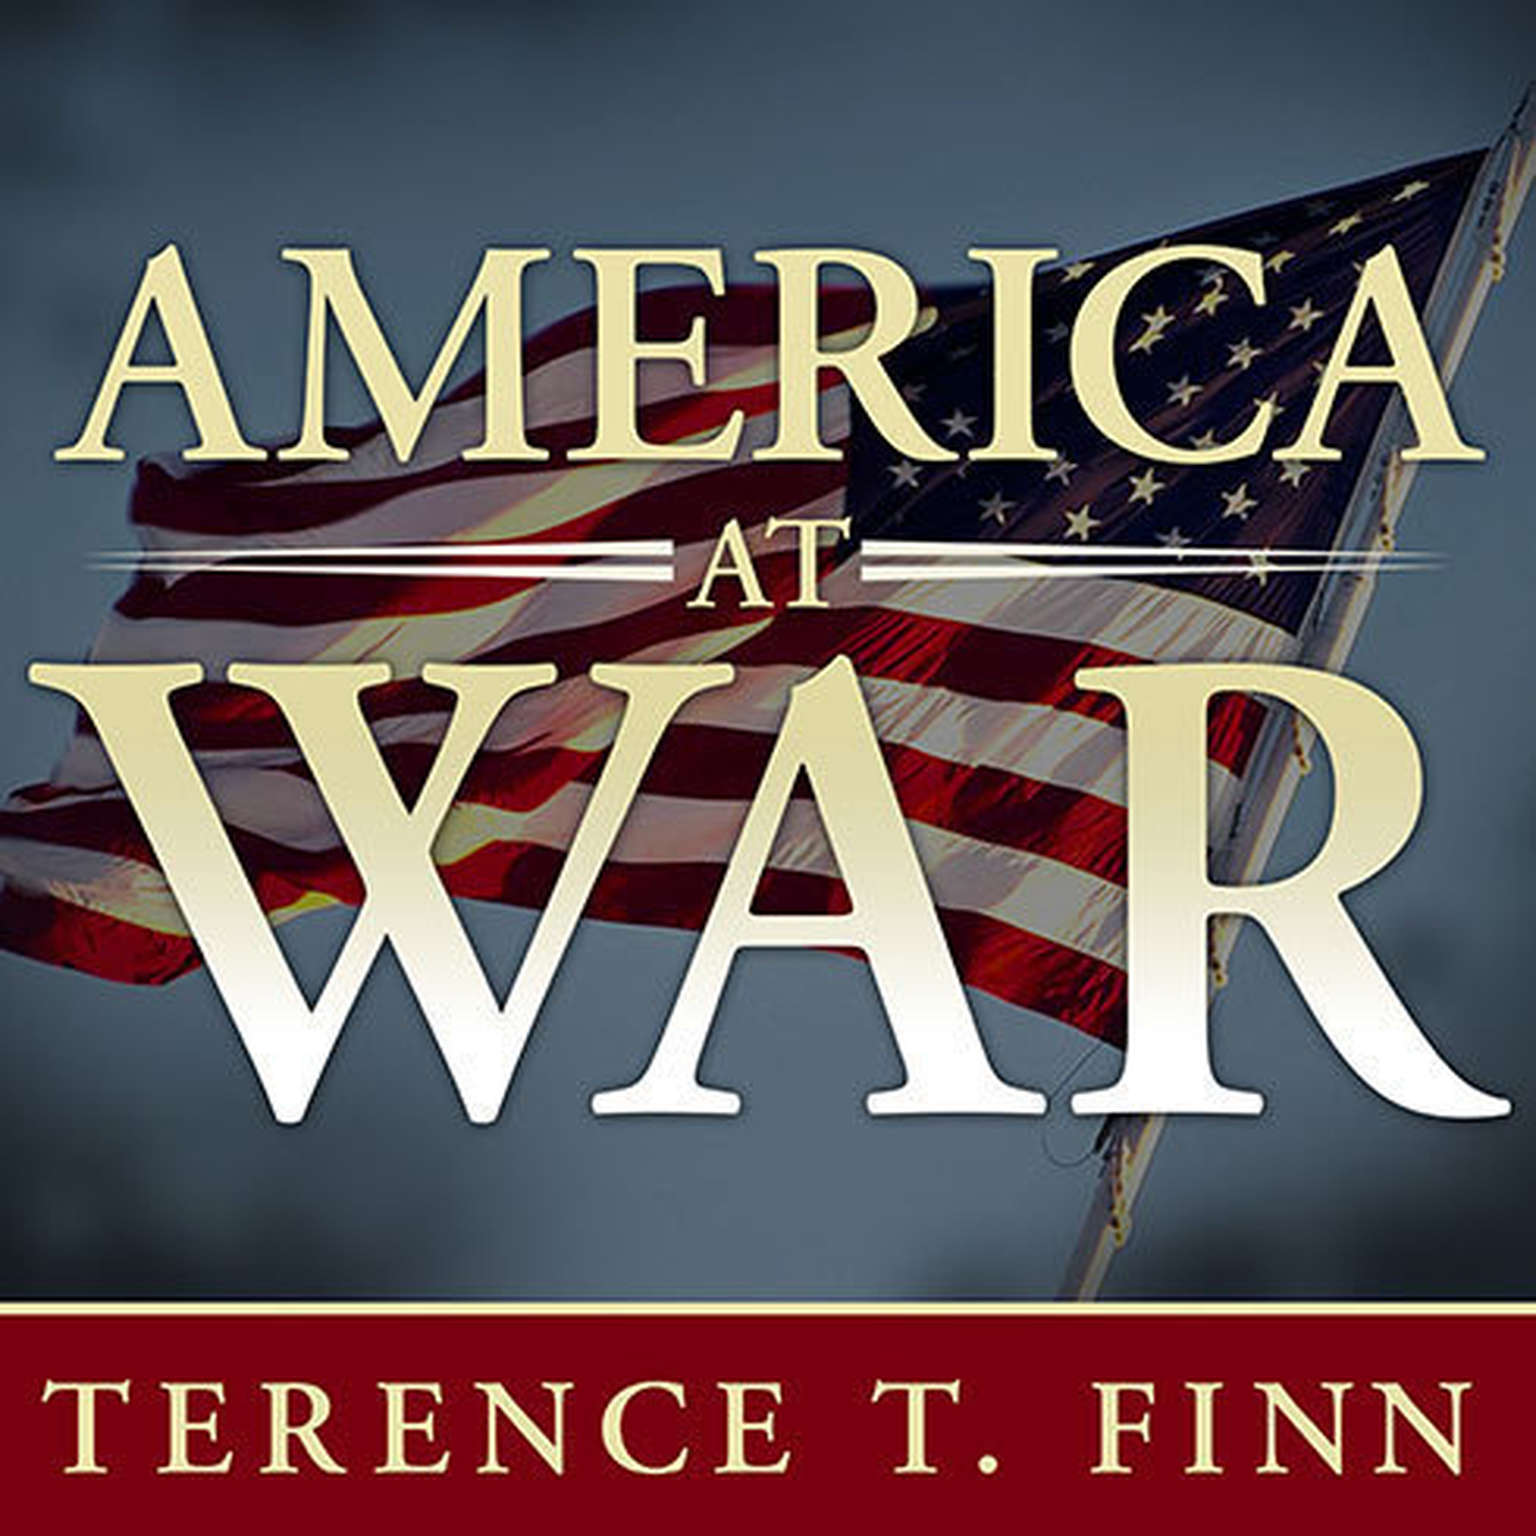 Printable America at War: Concise Histories of U.S. Military Conflicts from Lexington to Afghanistan Audiobook Cover Art